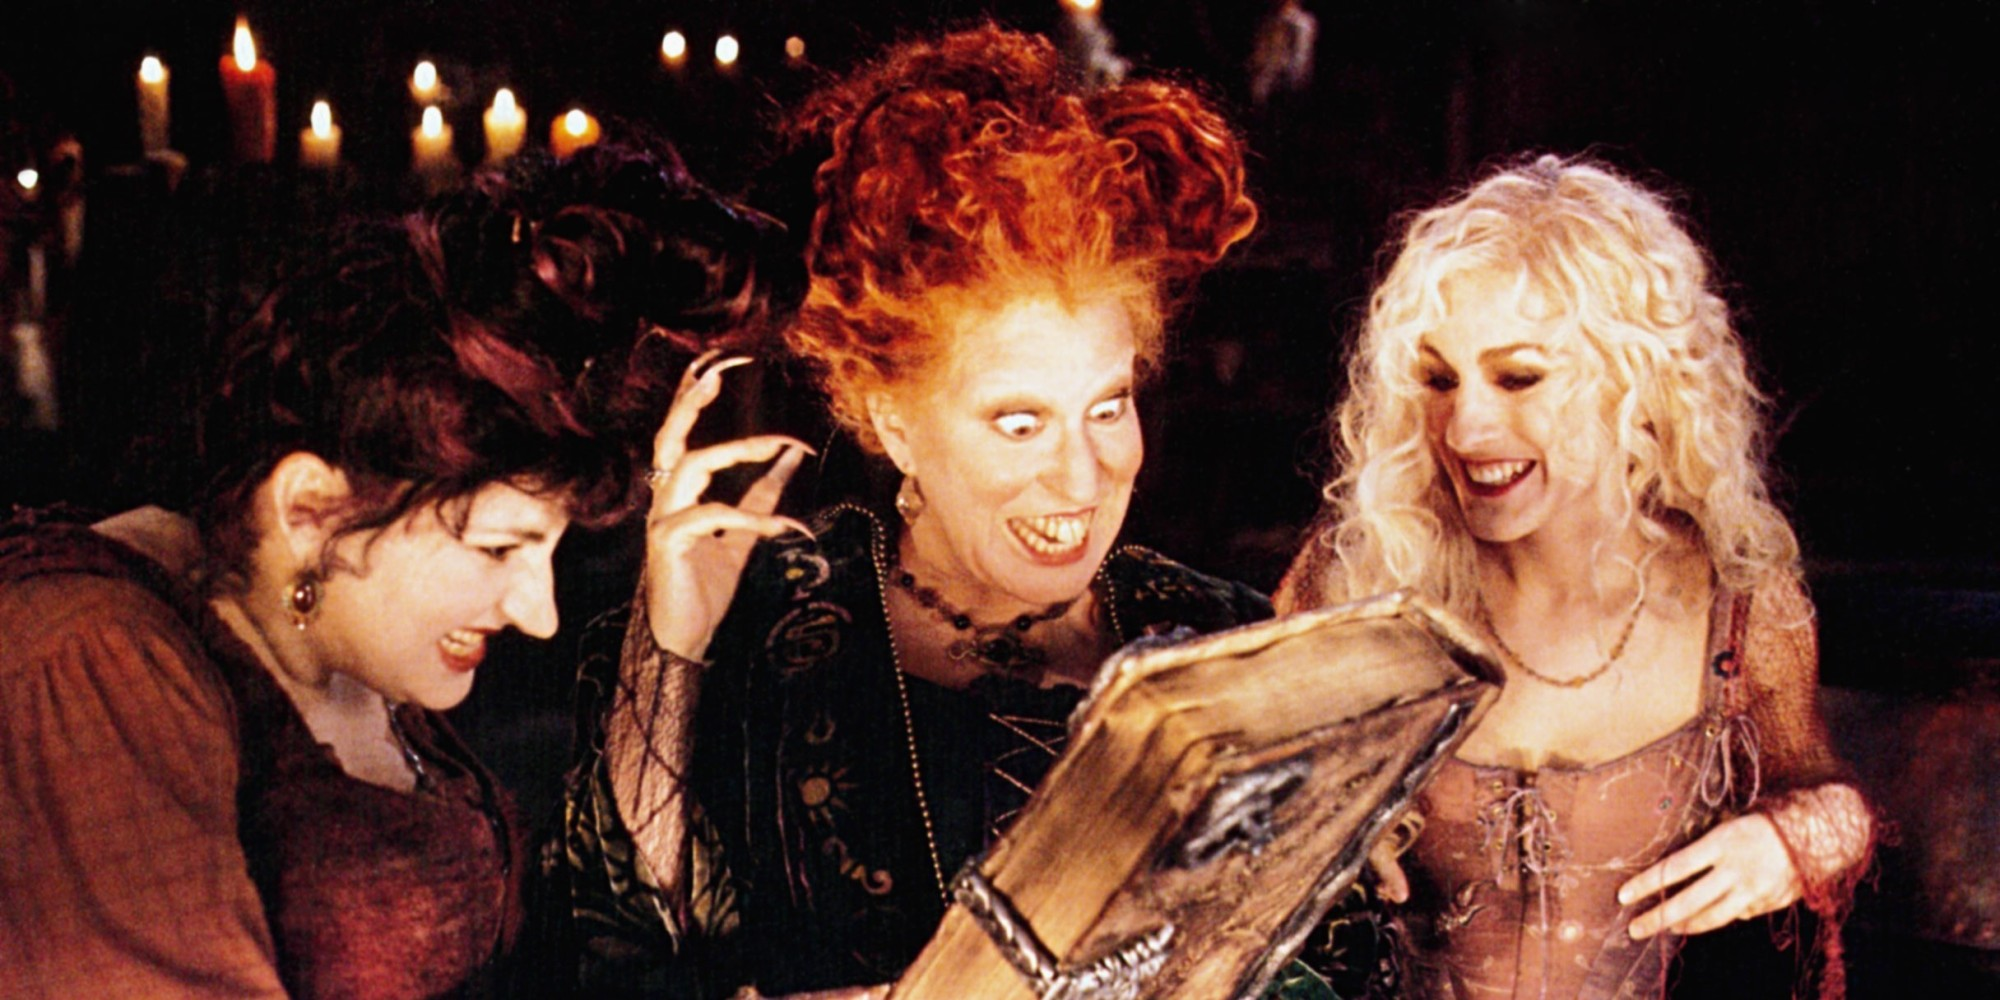 The Sanderson Sisters, three witches, concoct a magical spell from the Book of Magic. Hocus Pocus Halloween.